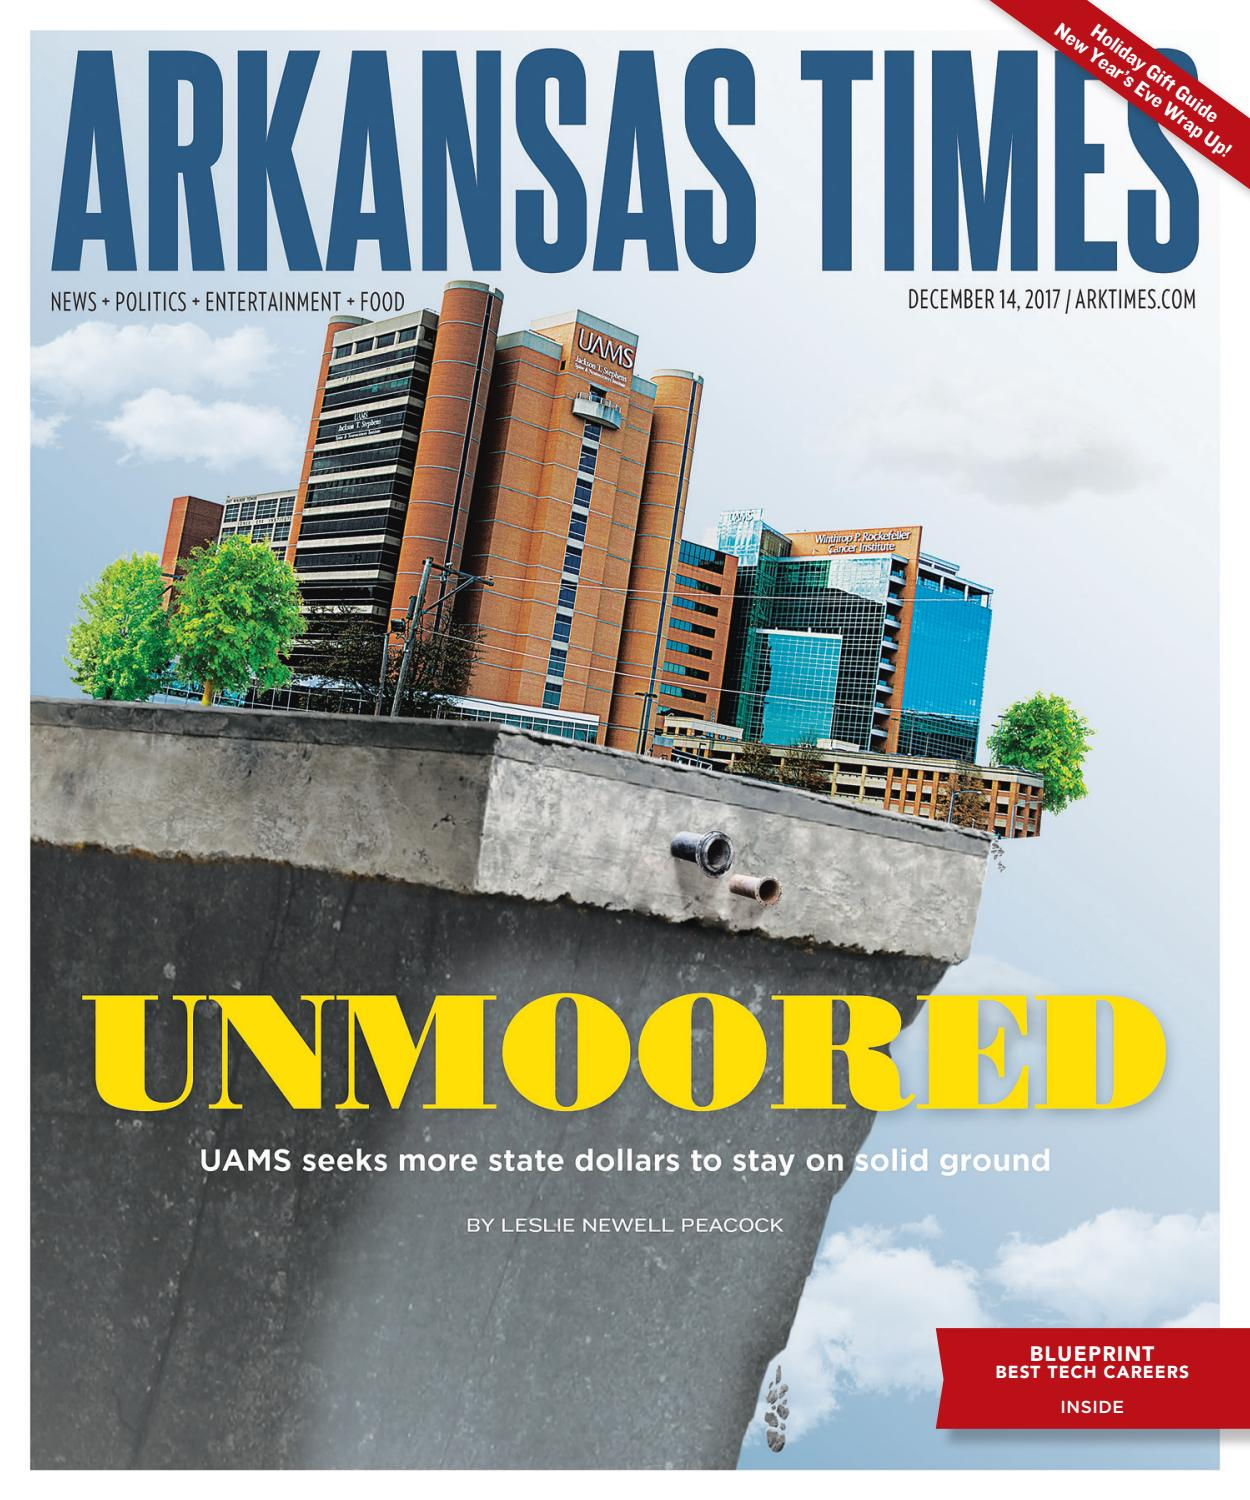 Arkansas times december 14 2017 by arkansas times issuu malvernweather Gallery